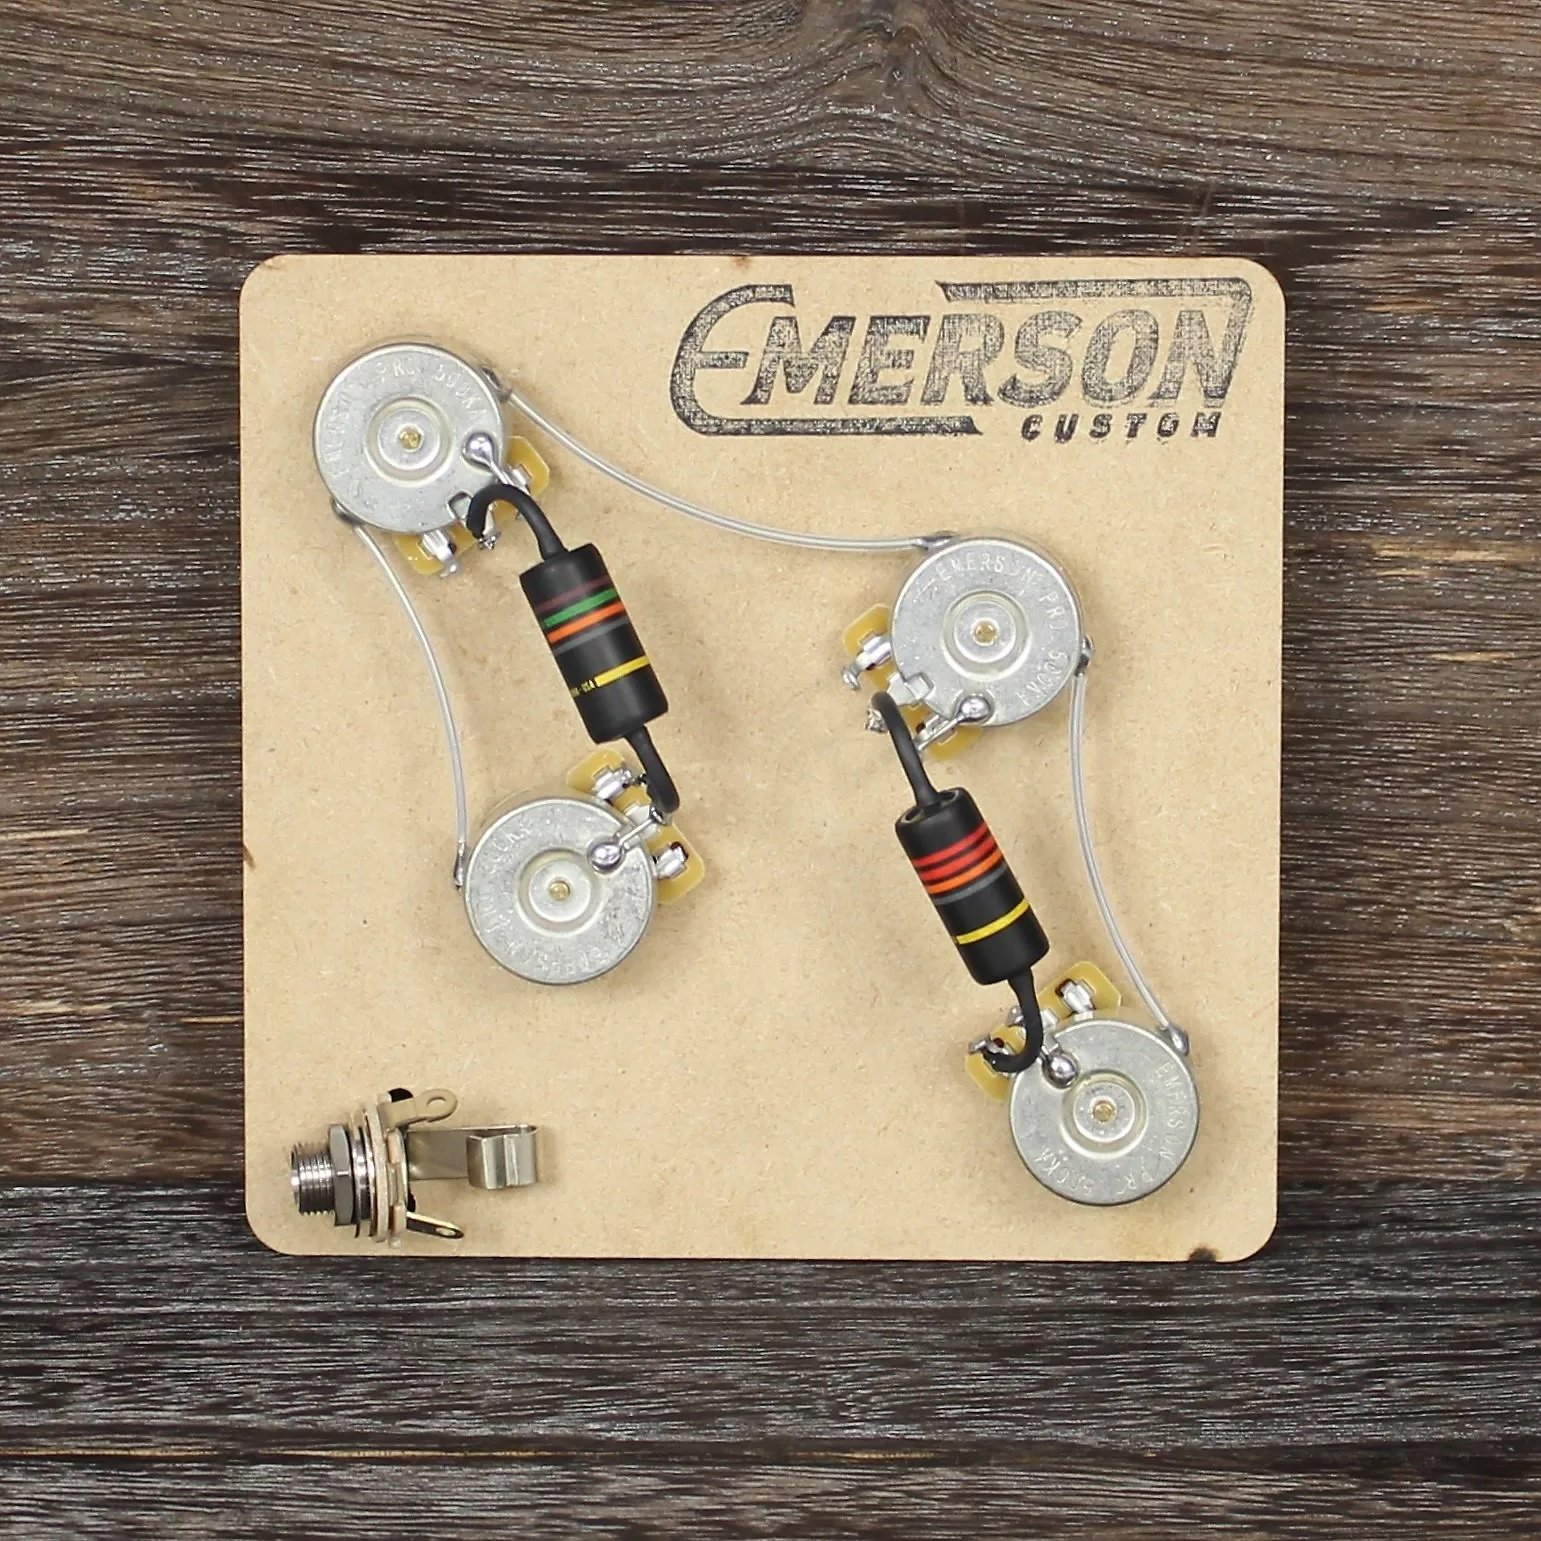 Emerson Custom 4 Knob Prewired Kit For Prs Guitars Guitar Wiring Diagram Two Humbuckers Four Knobs